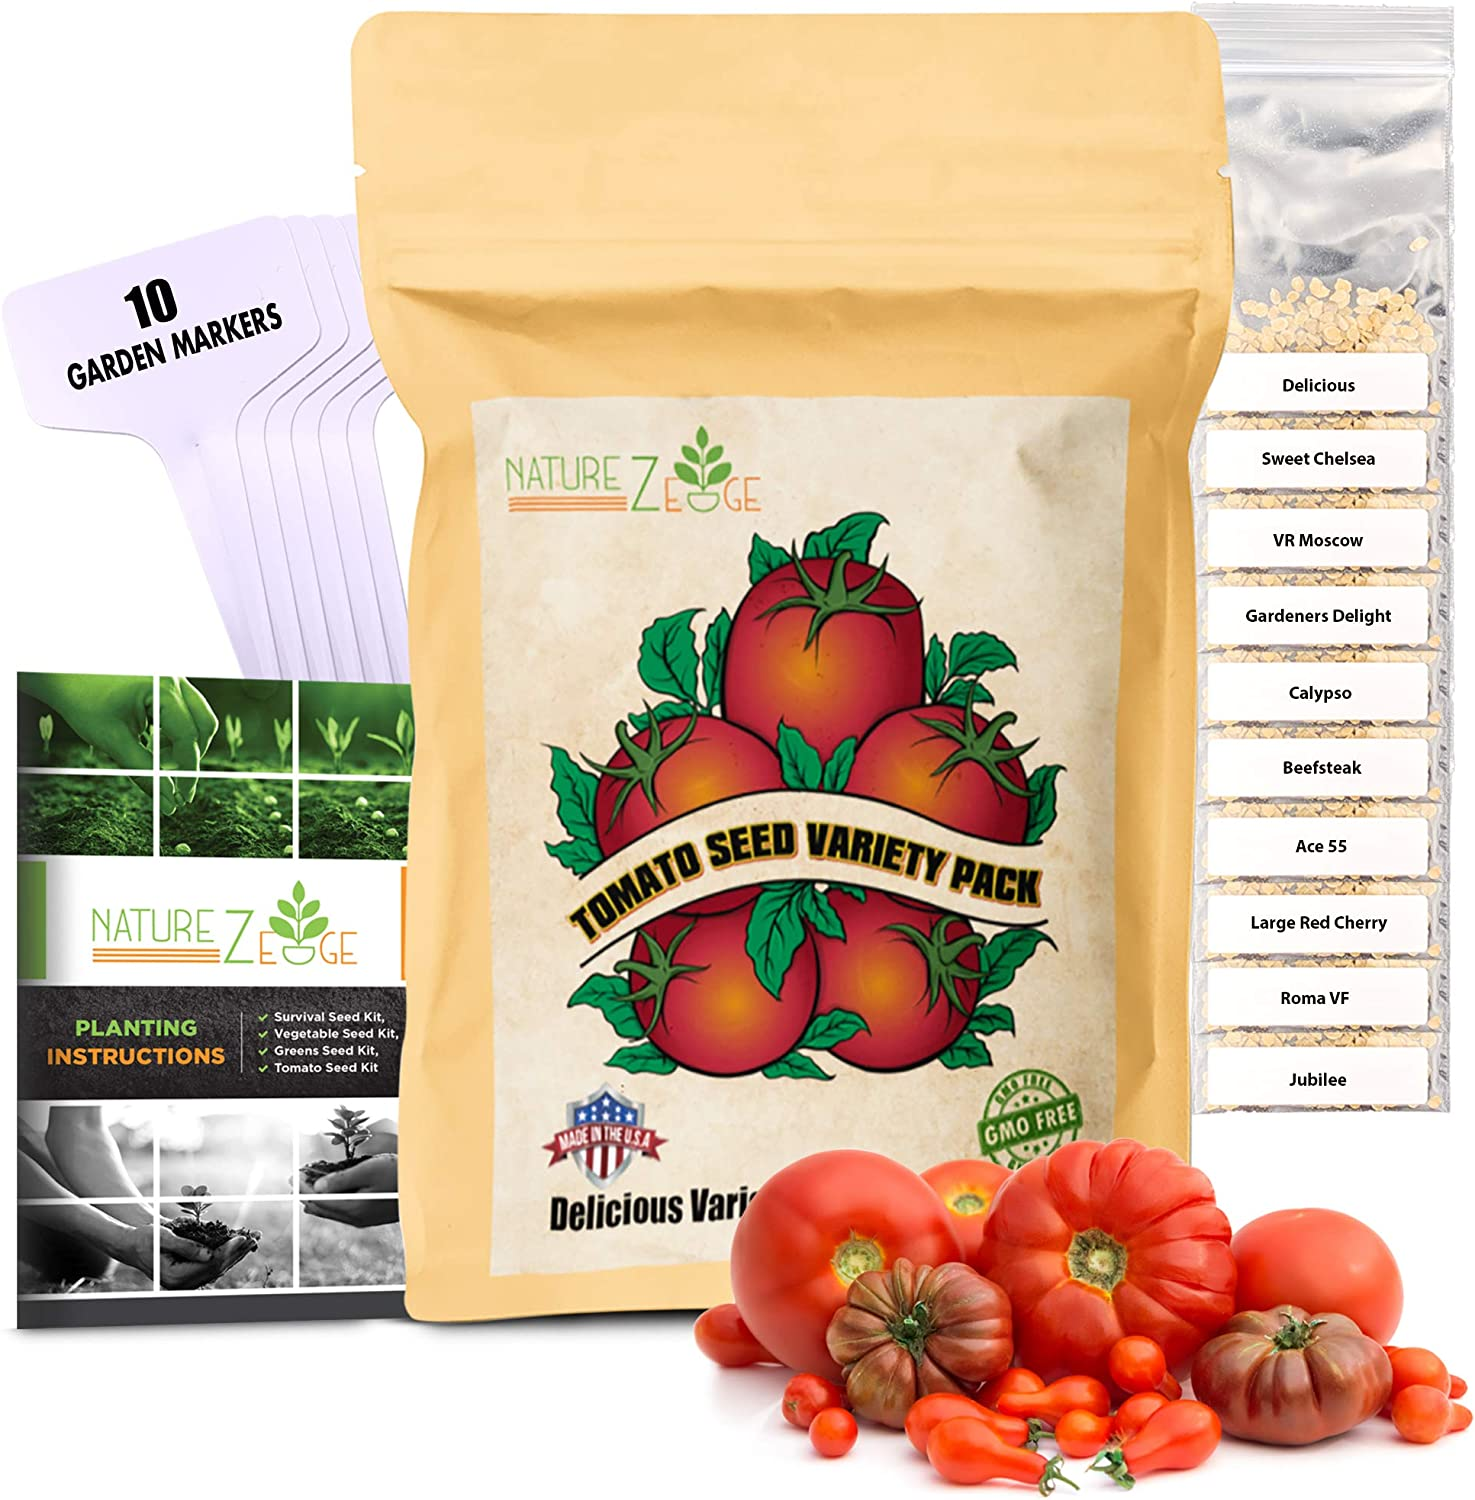 NatureZ Edge Heirloom Tomato Seeds for Planting Home Garden - 10 Heirloom Tomatoes Variety Pack and 10 Garden Markers - Non GMO Heirloom Tomatoes Seeds - Beefsteak, Jubilee, Cherry, Roma, and More